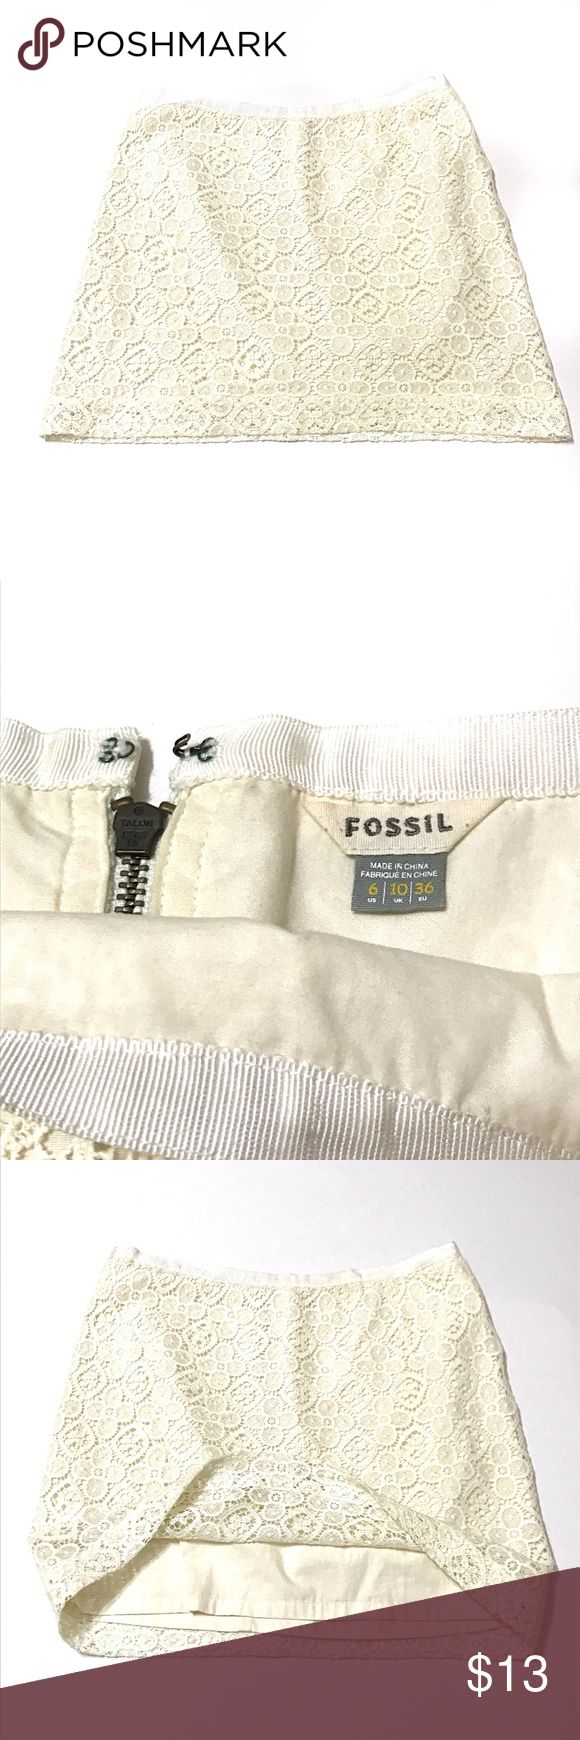 Fossil Cream Lace Skirt True to size. Smoke free home. No inside pets. Good used condition.  One small pinhole, please see photos. Fully lined Fossil Skirts Mini